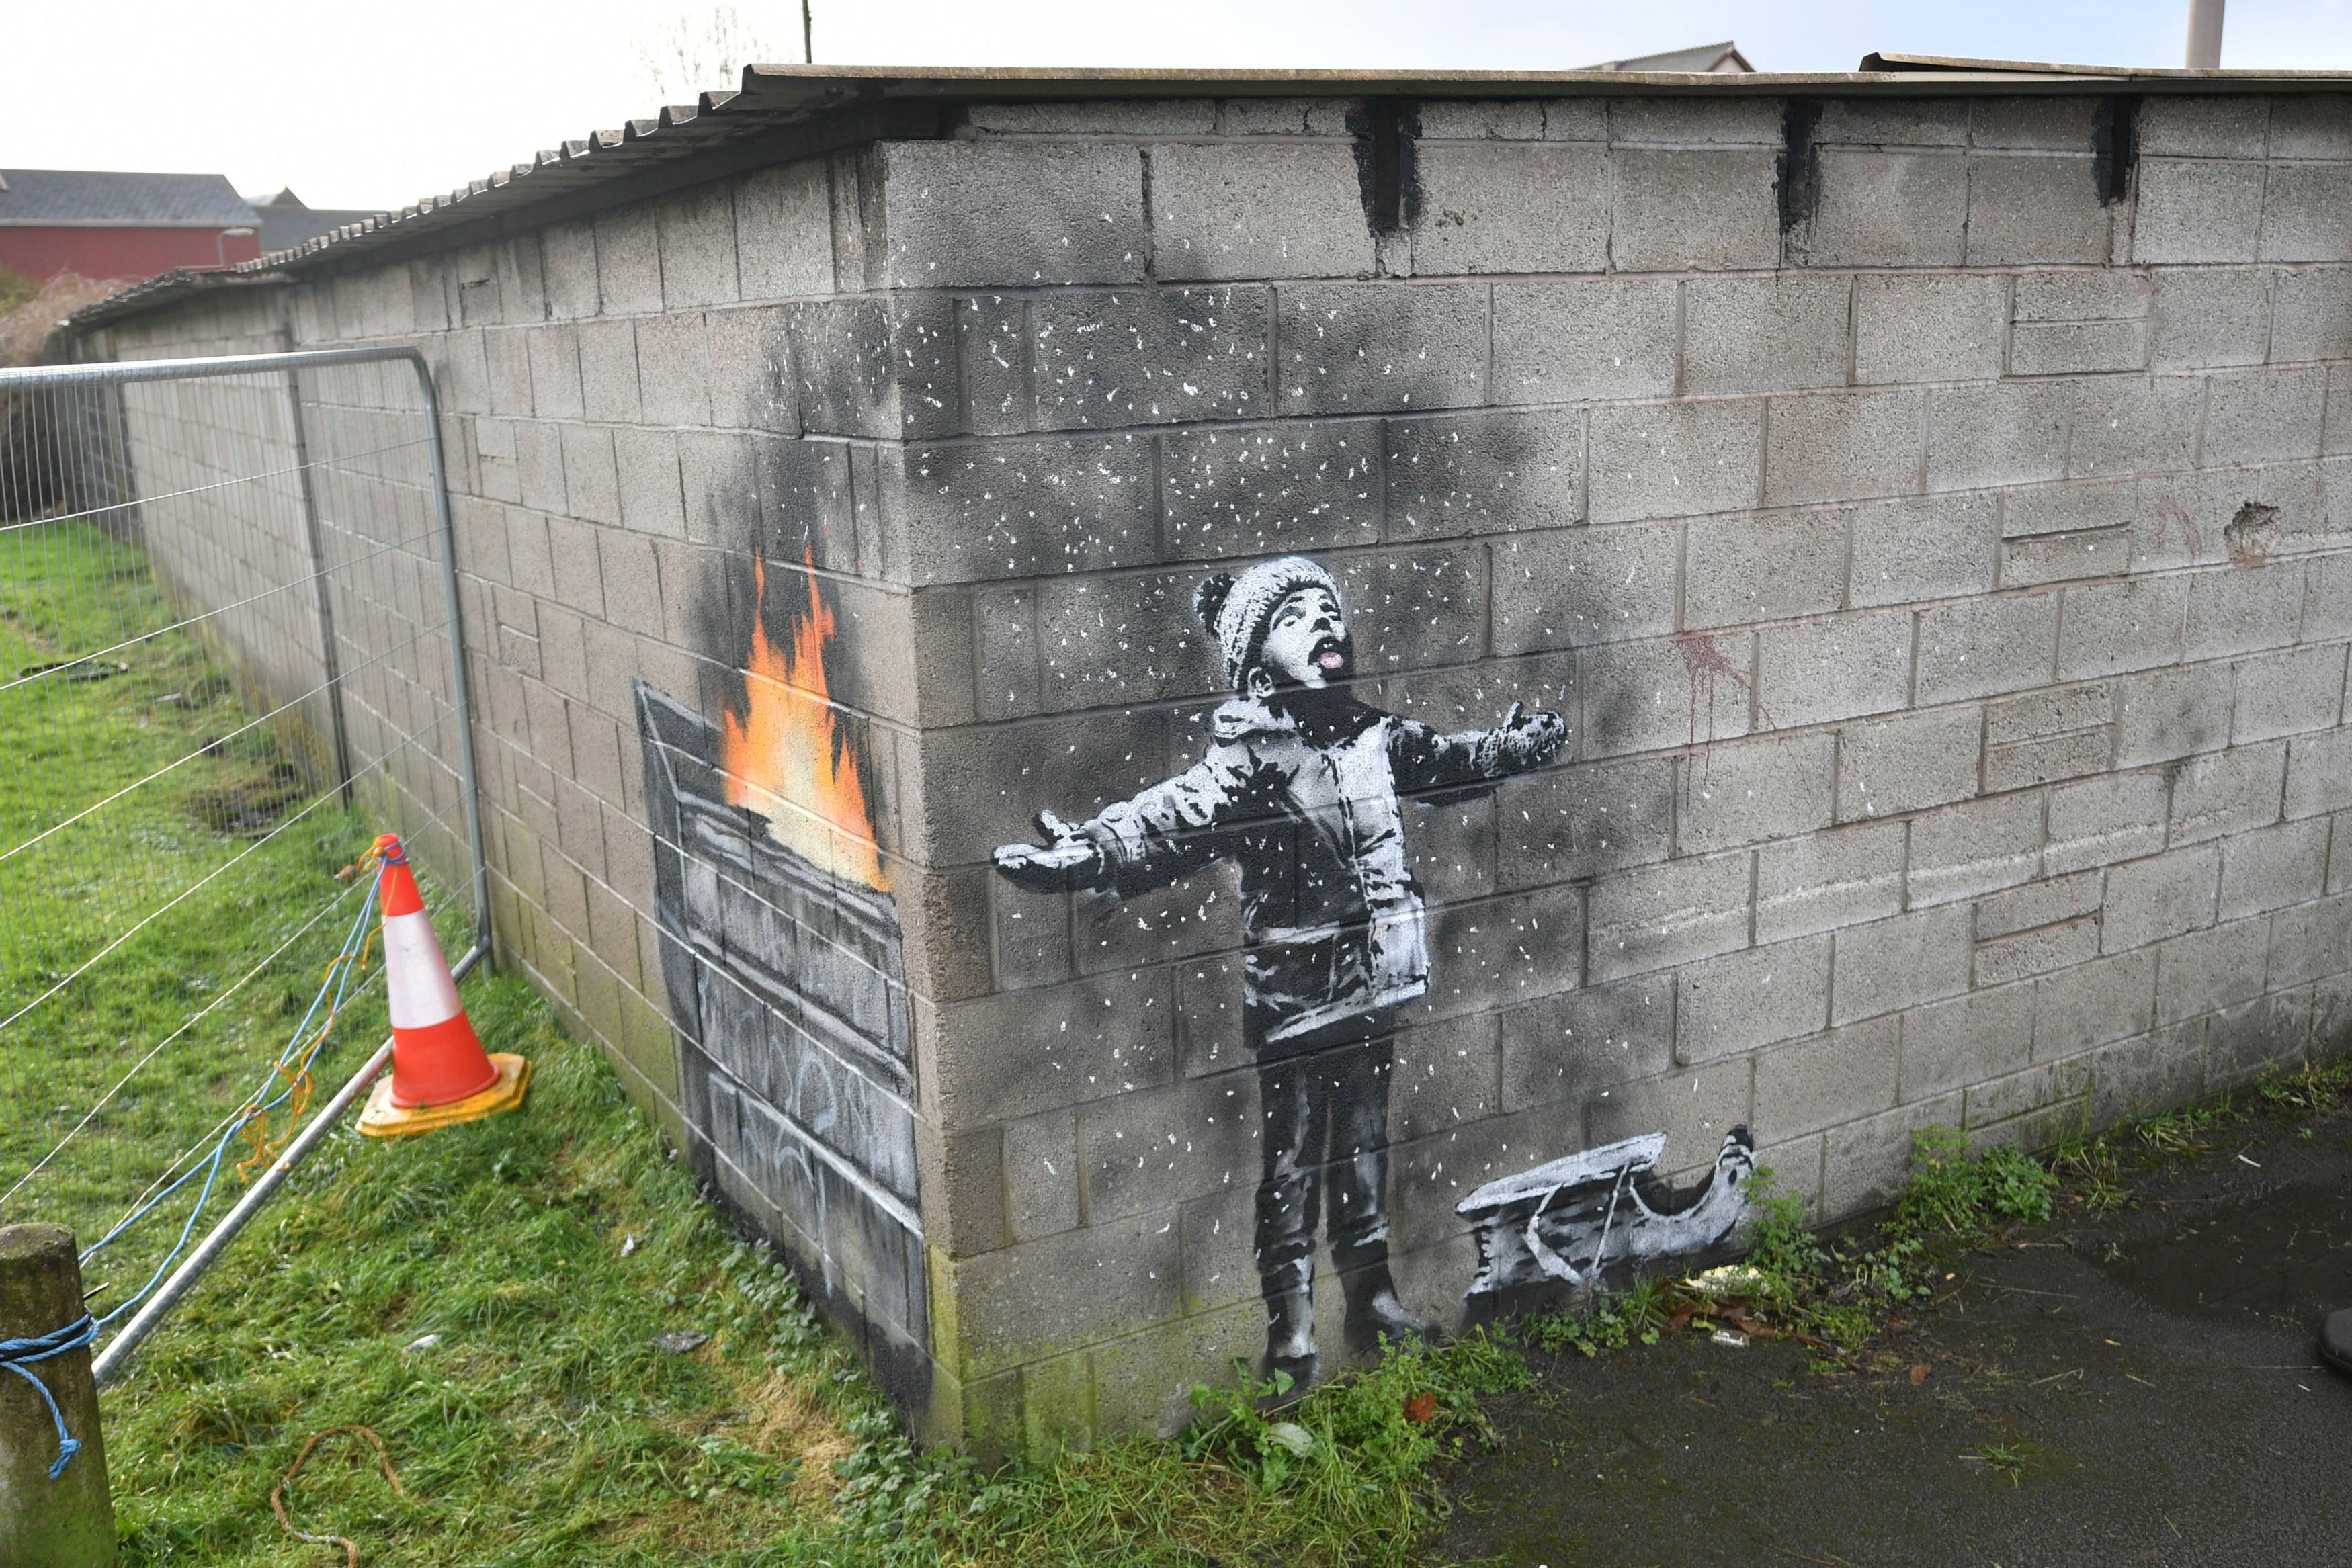 Locals inPort Talbot, Wales, first spotted the mural on Tuesday.